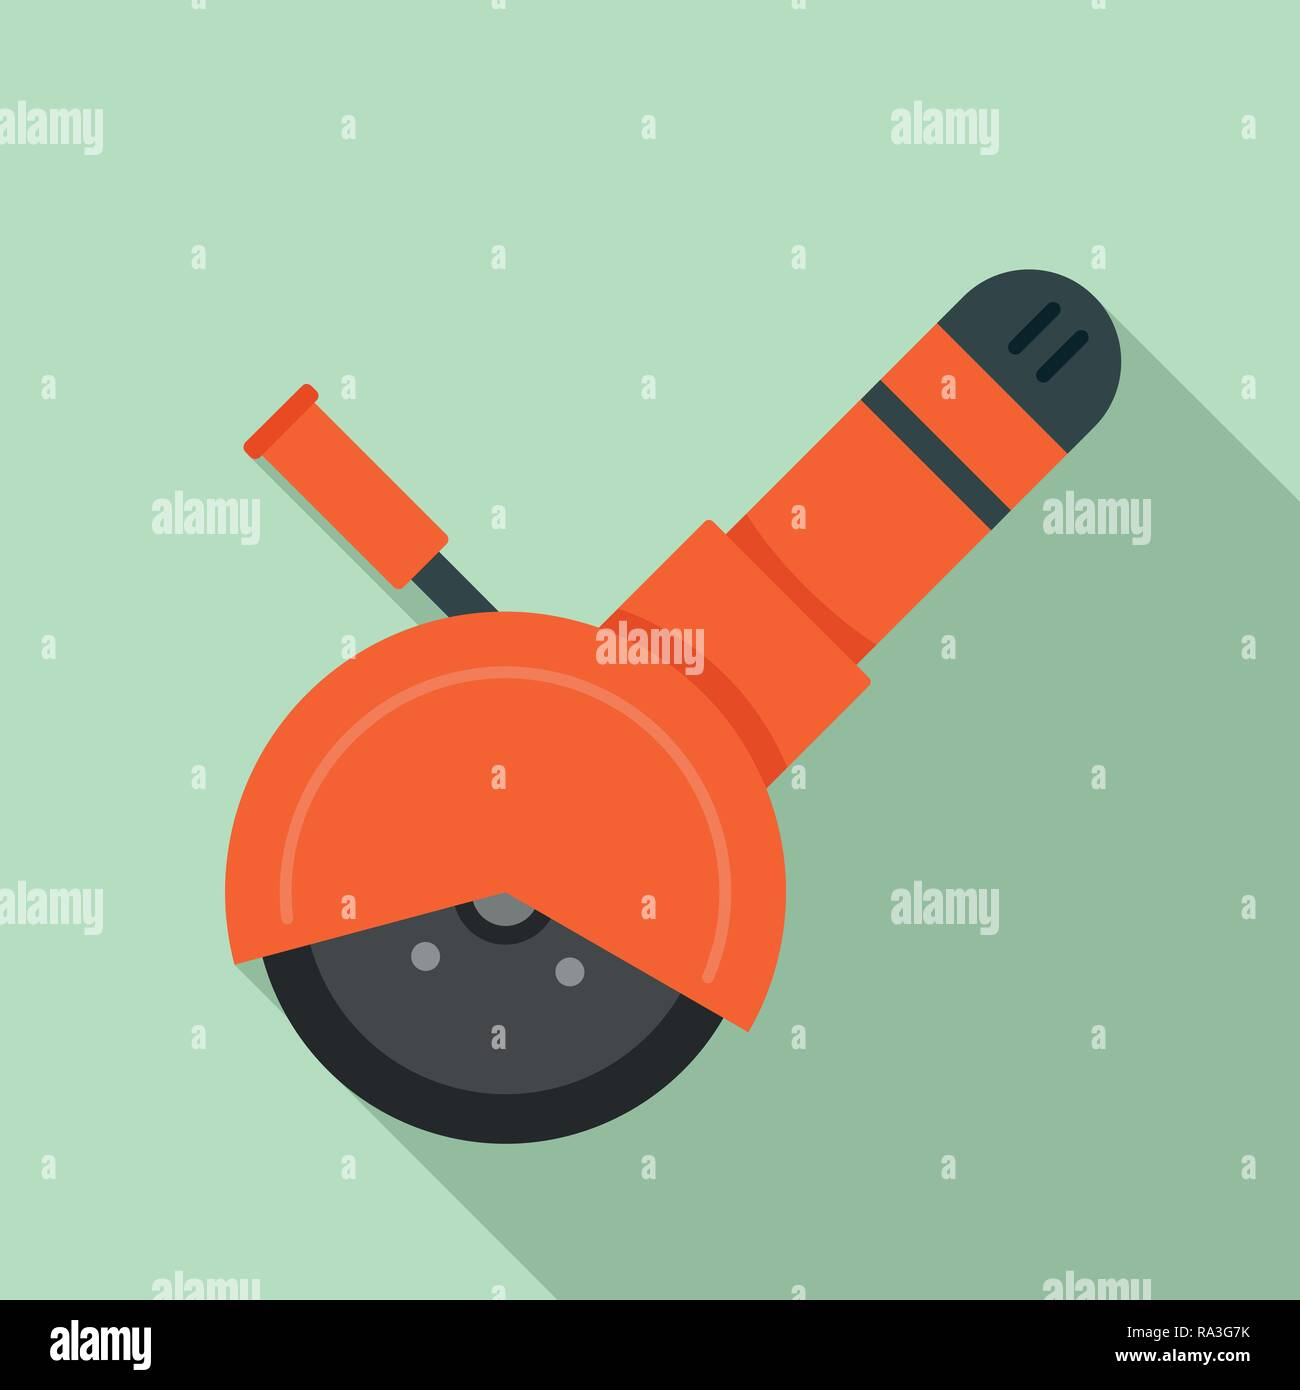 Angle grinder tool icon. Flat illustration of angle grinder tool vector icon for web design - Stock Vector